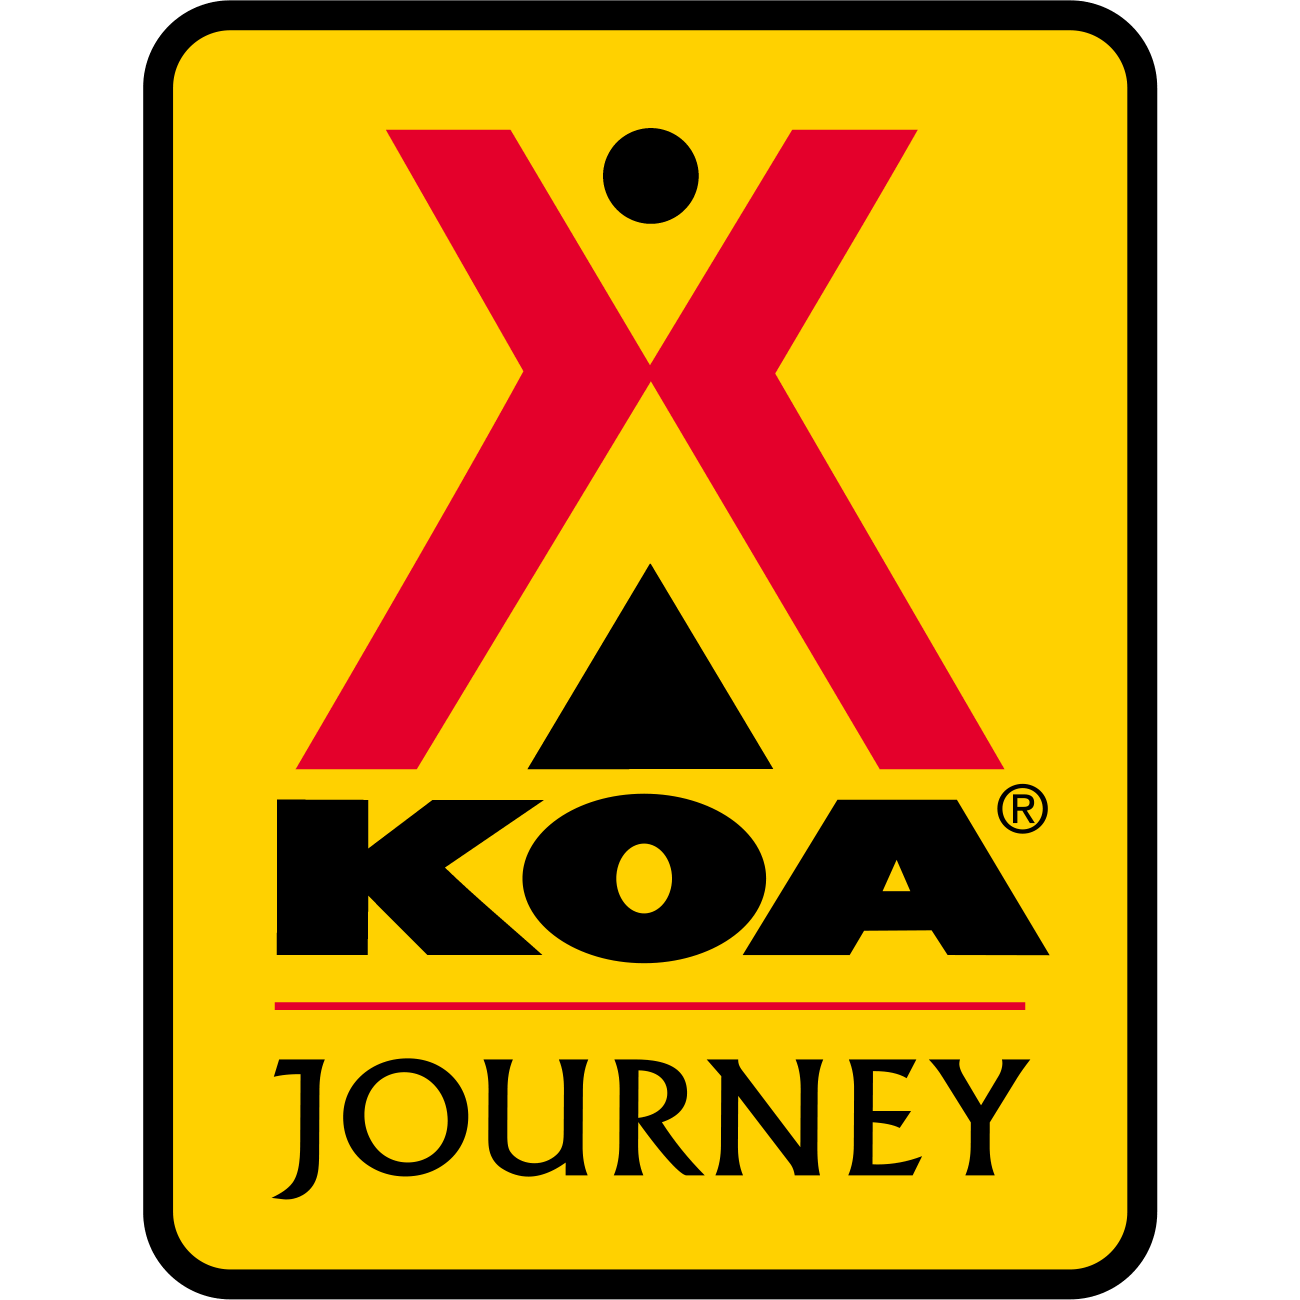 Kamiah / Clearwater River KOA Journey